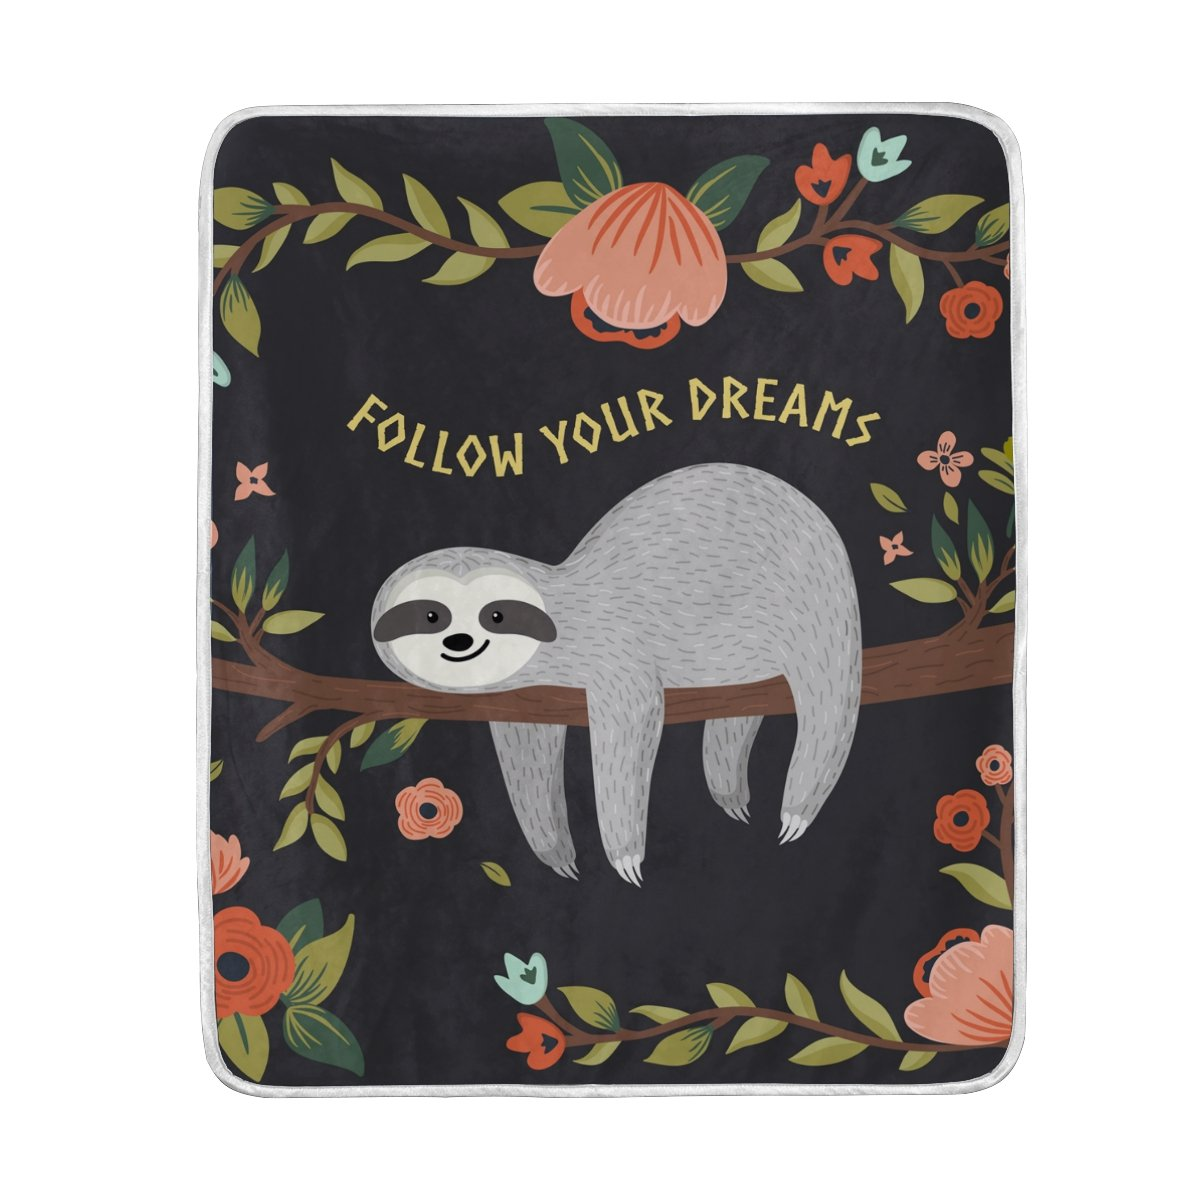 My Little Nest Follow Your Dreams Cute Sloth Soft Throw Blanket Lightweight MicrofiberCozy Warm Blankets Everyday Use for Bed Couch Sofa 50'' x 60''